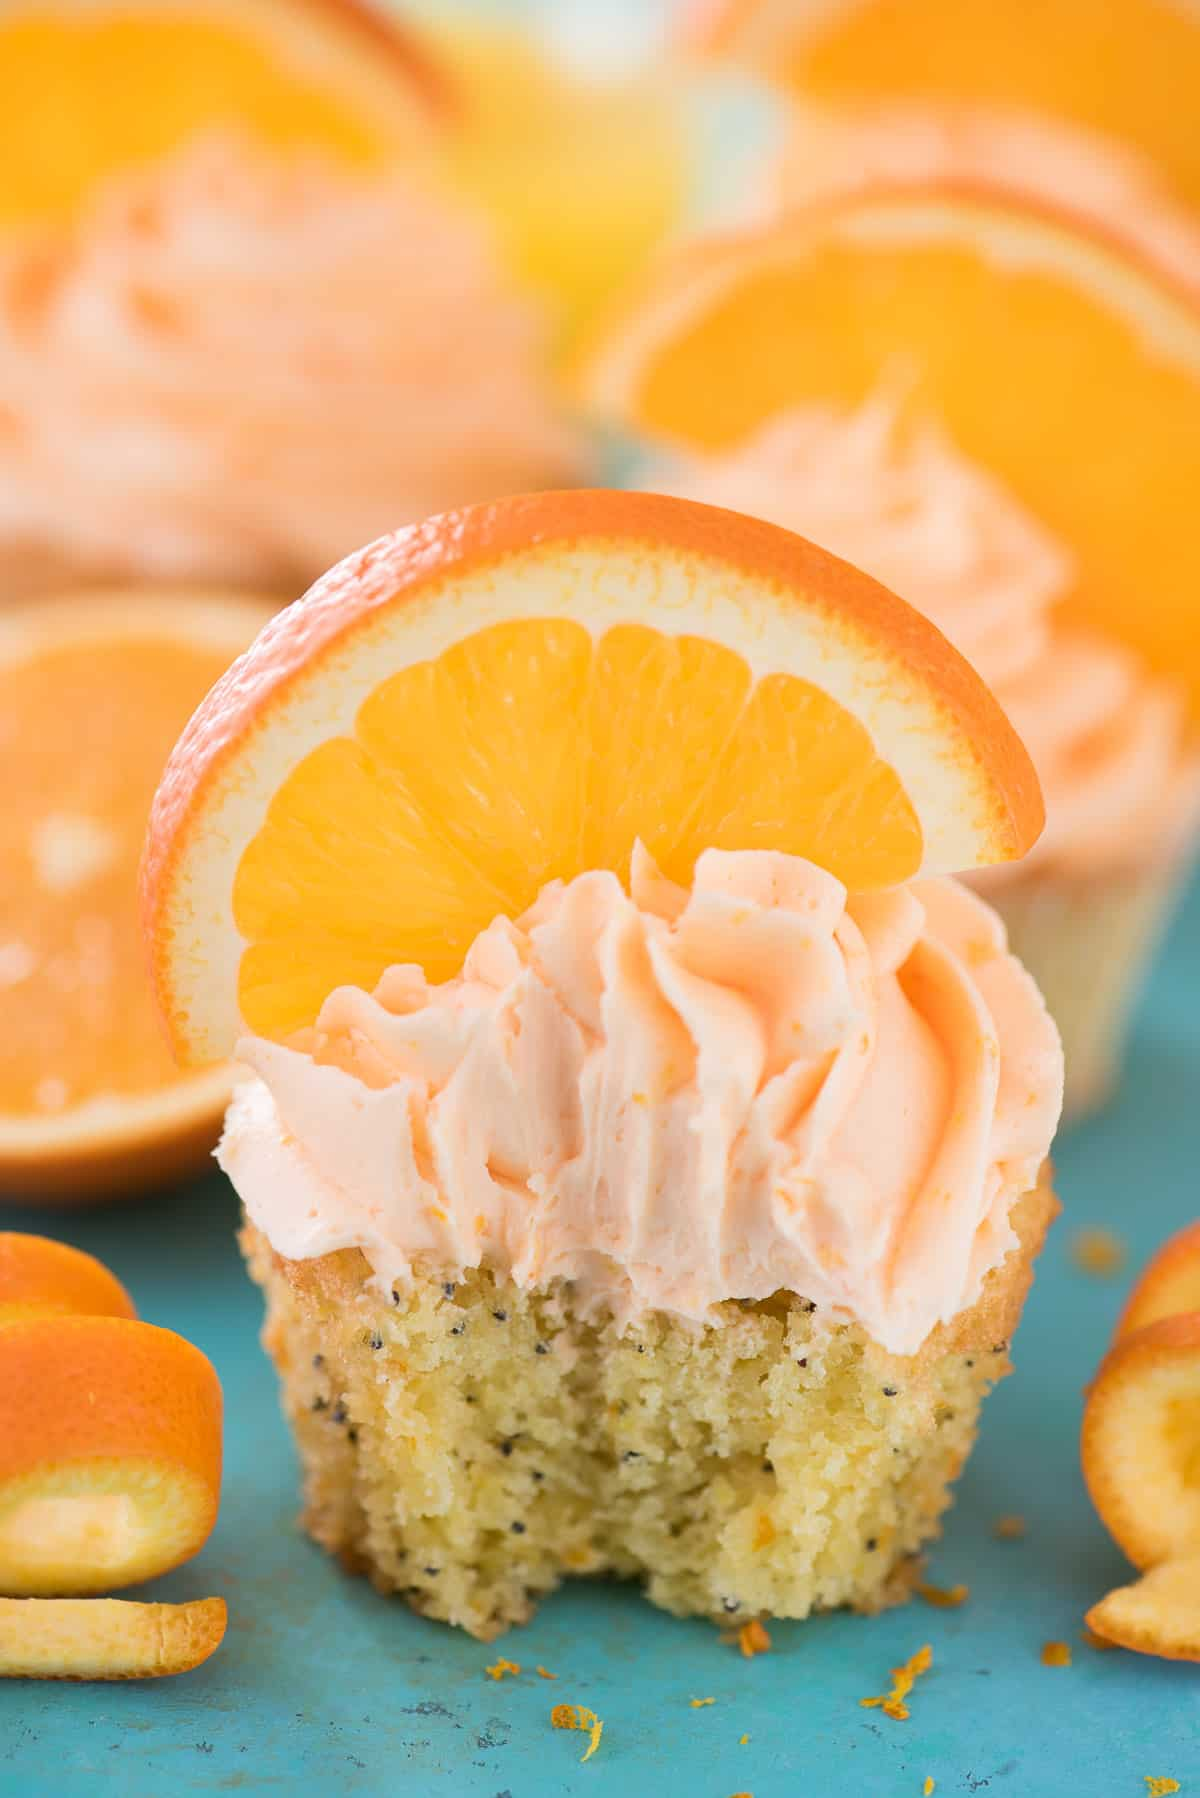 Orange Poppy Seed Cupcake with orange slice on blue background